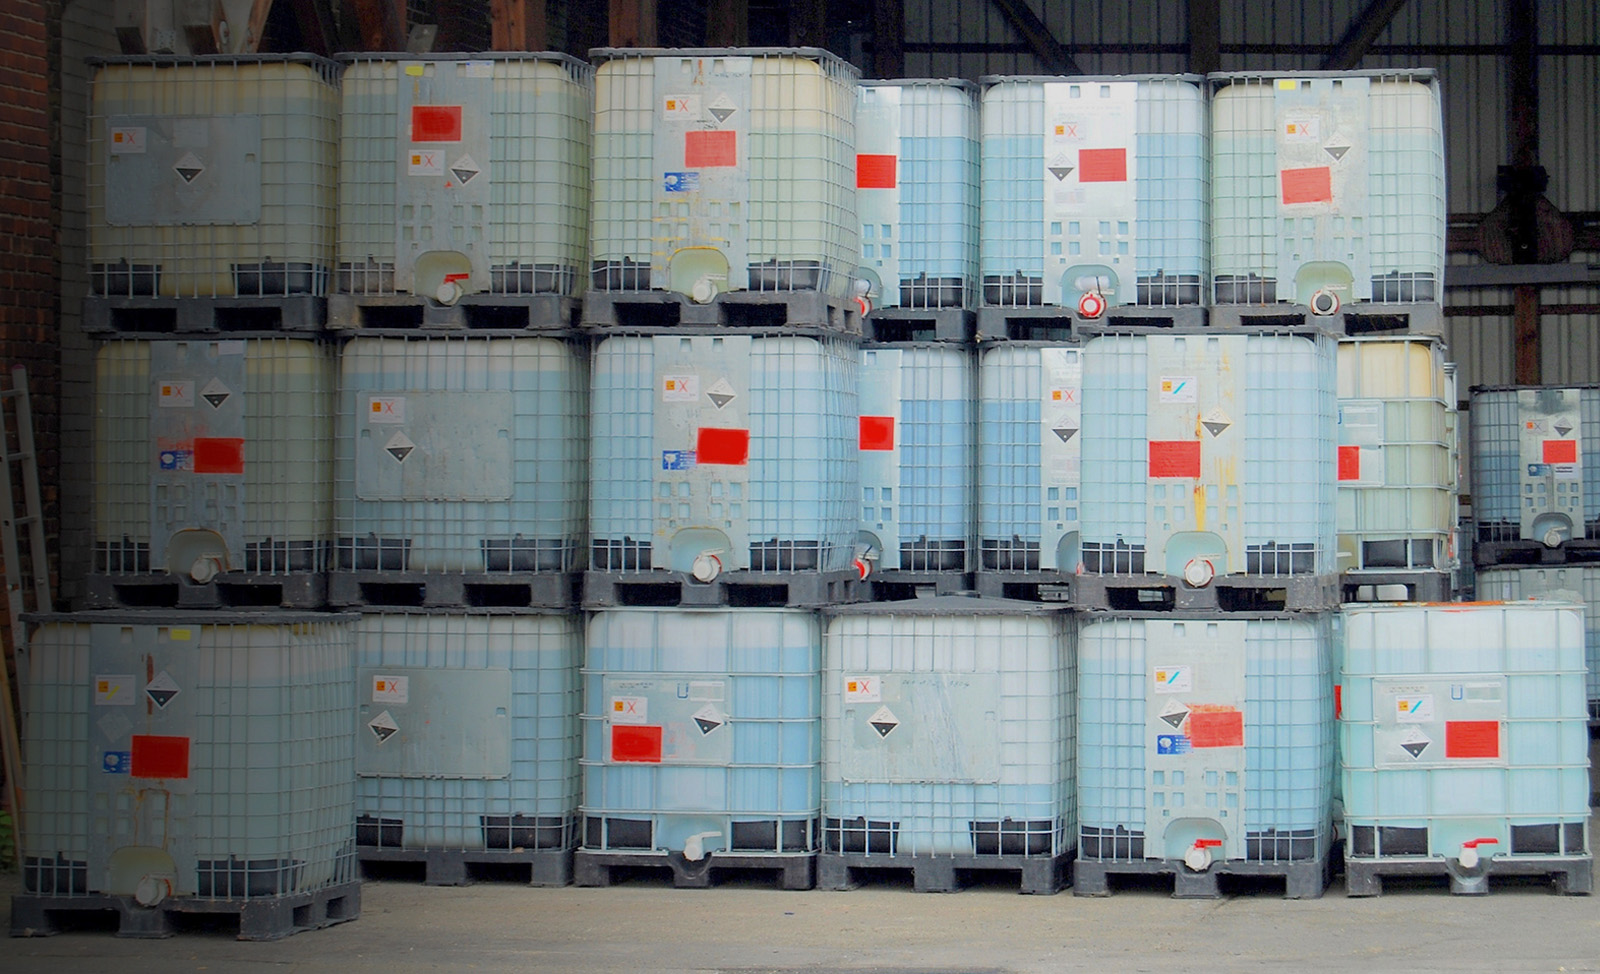 bigstock-Chemical-container-in-a-wareho-IBC-1600x900px_header_grey